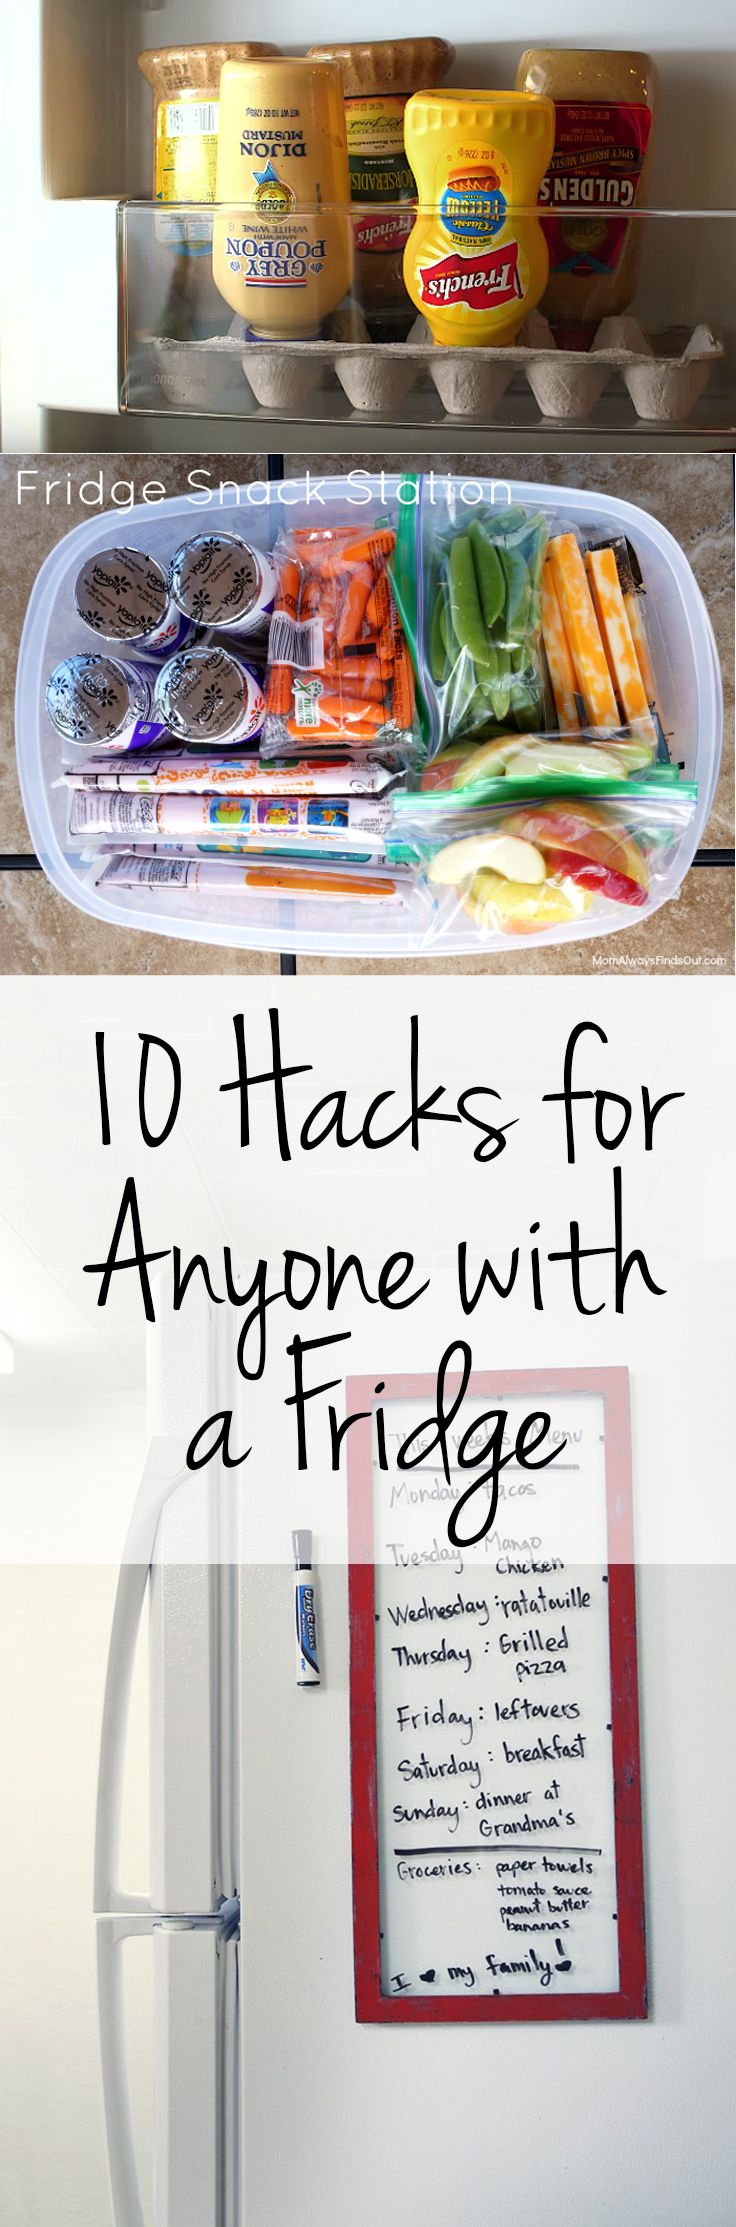 10 Hacks For Anyone With A Fridge